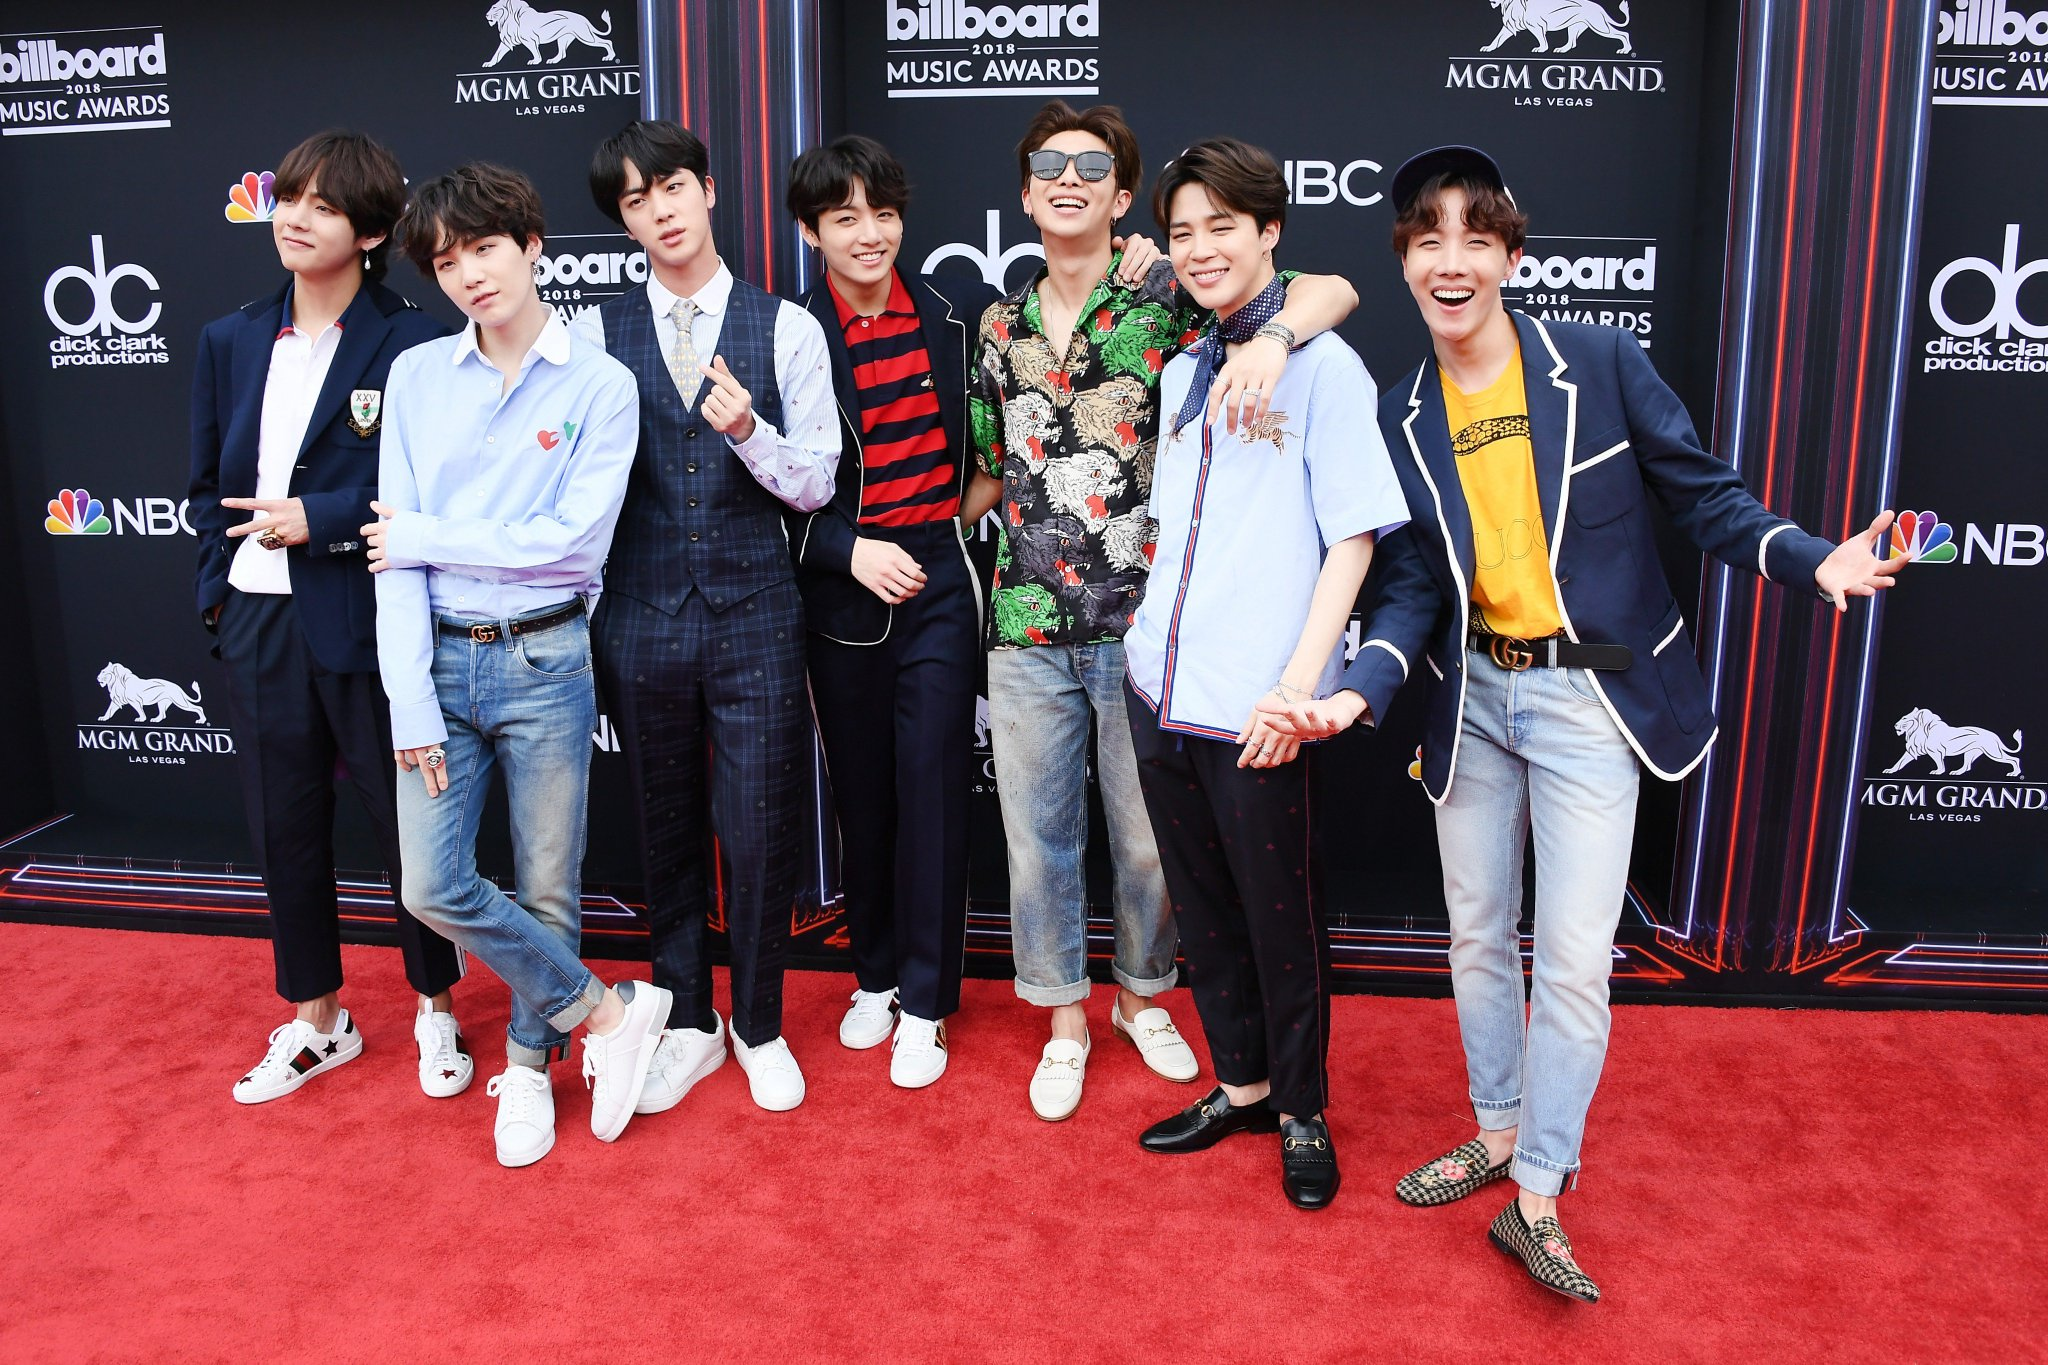 BTS just gave us ALL the outfit ideas at the #bbmas: https://t.co/KzL1nzLpnv https://t.co/fyESgDNG9M